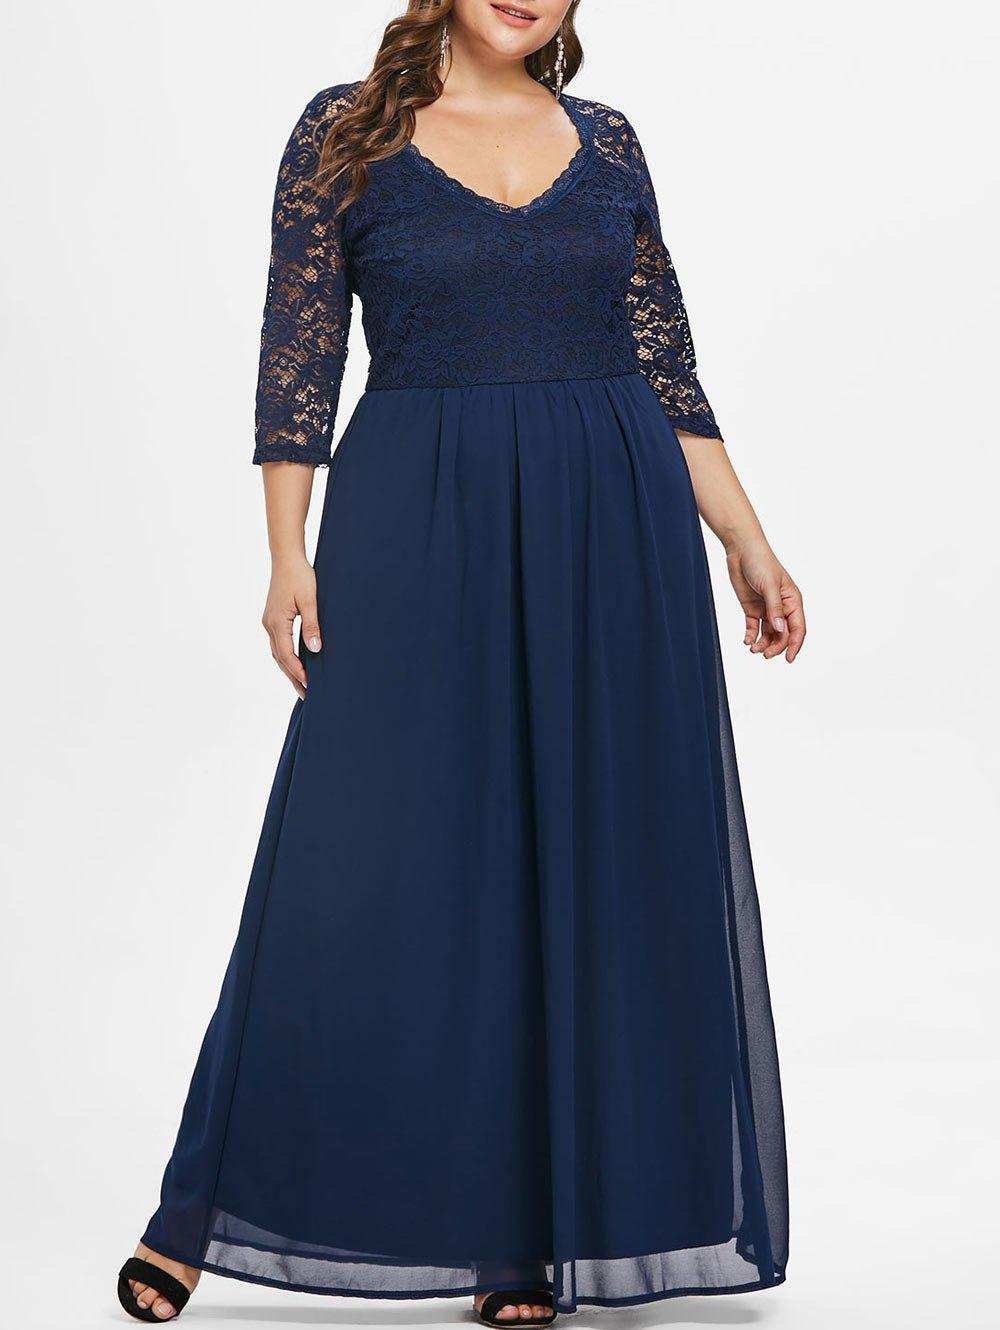 Lace Sleeve Plus Size Sweetheart Neck Maxi Dress - CADETBLUE 4X